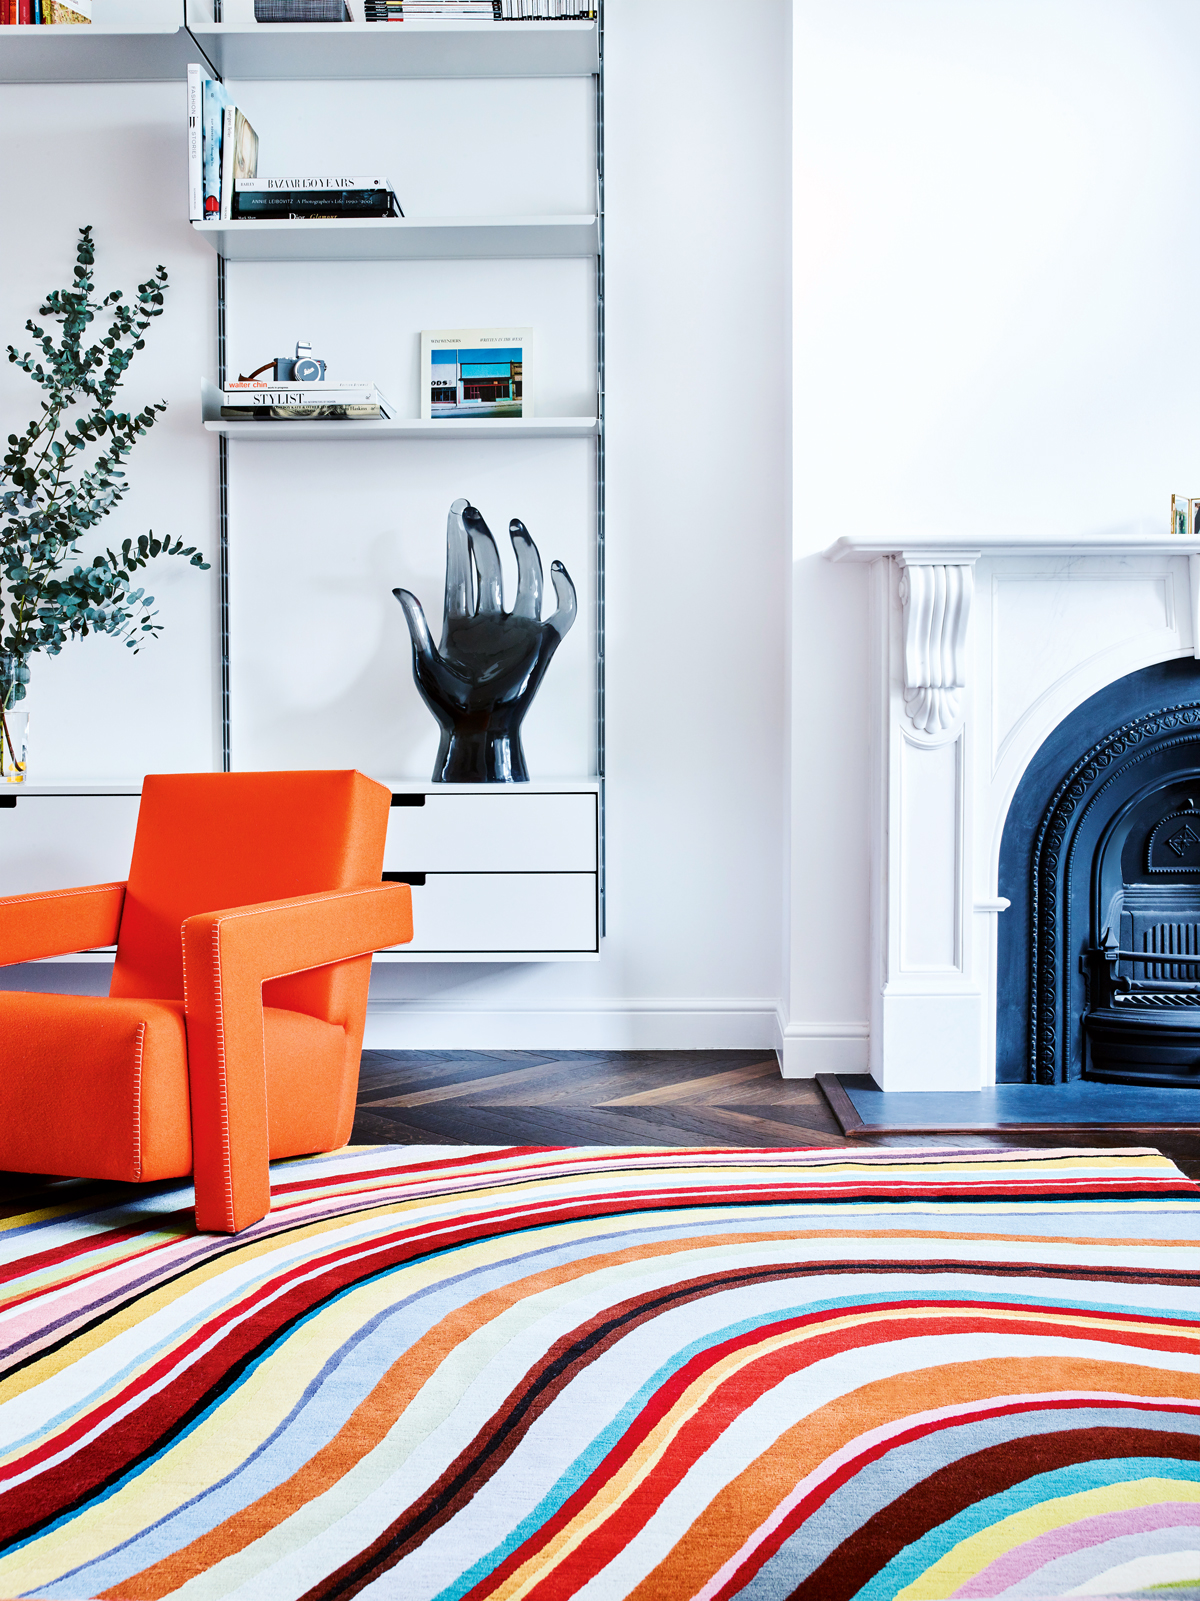 The Swirl Rug By Paul Smith For The Rug